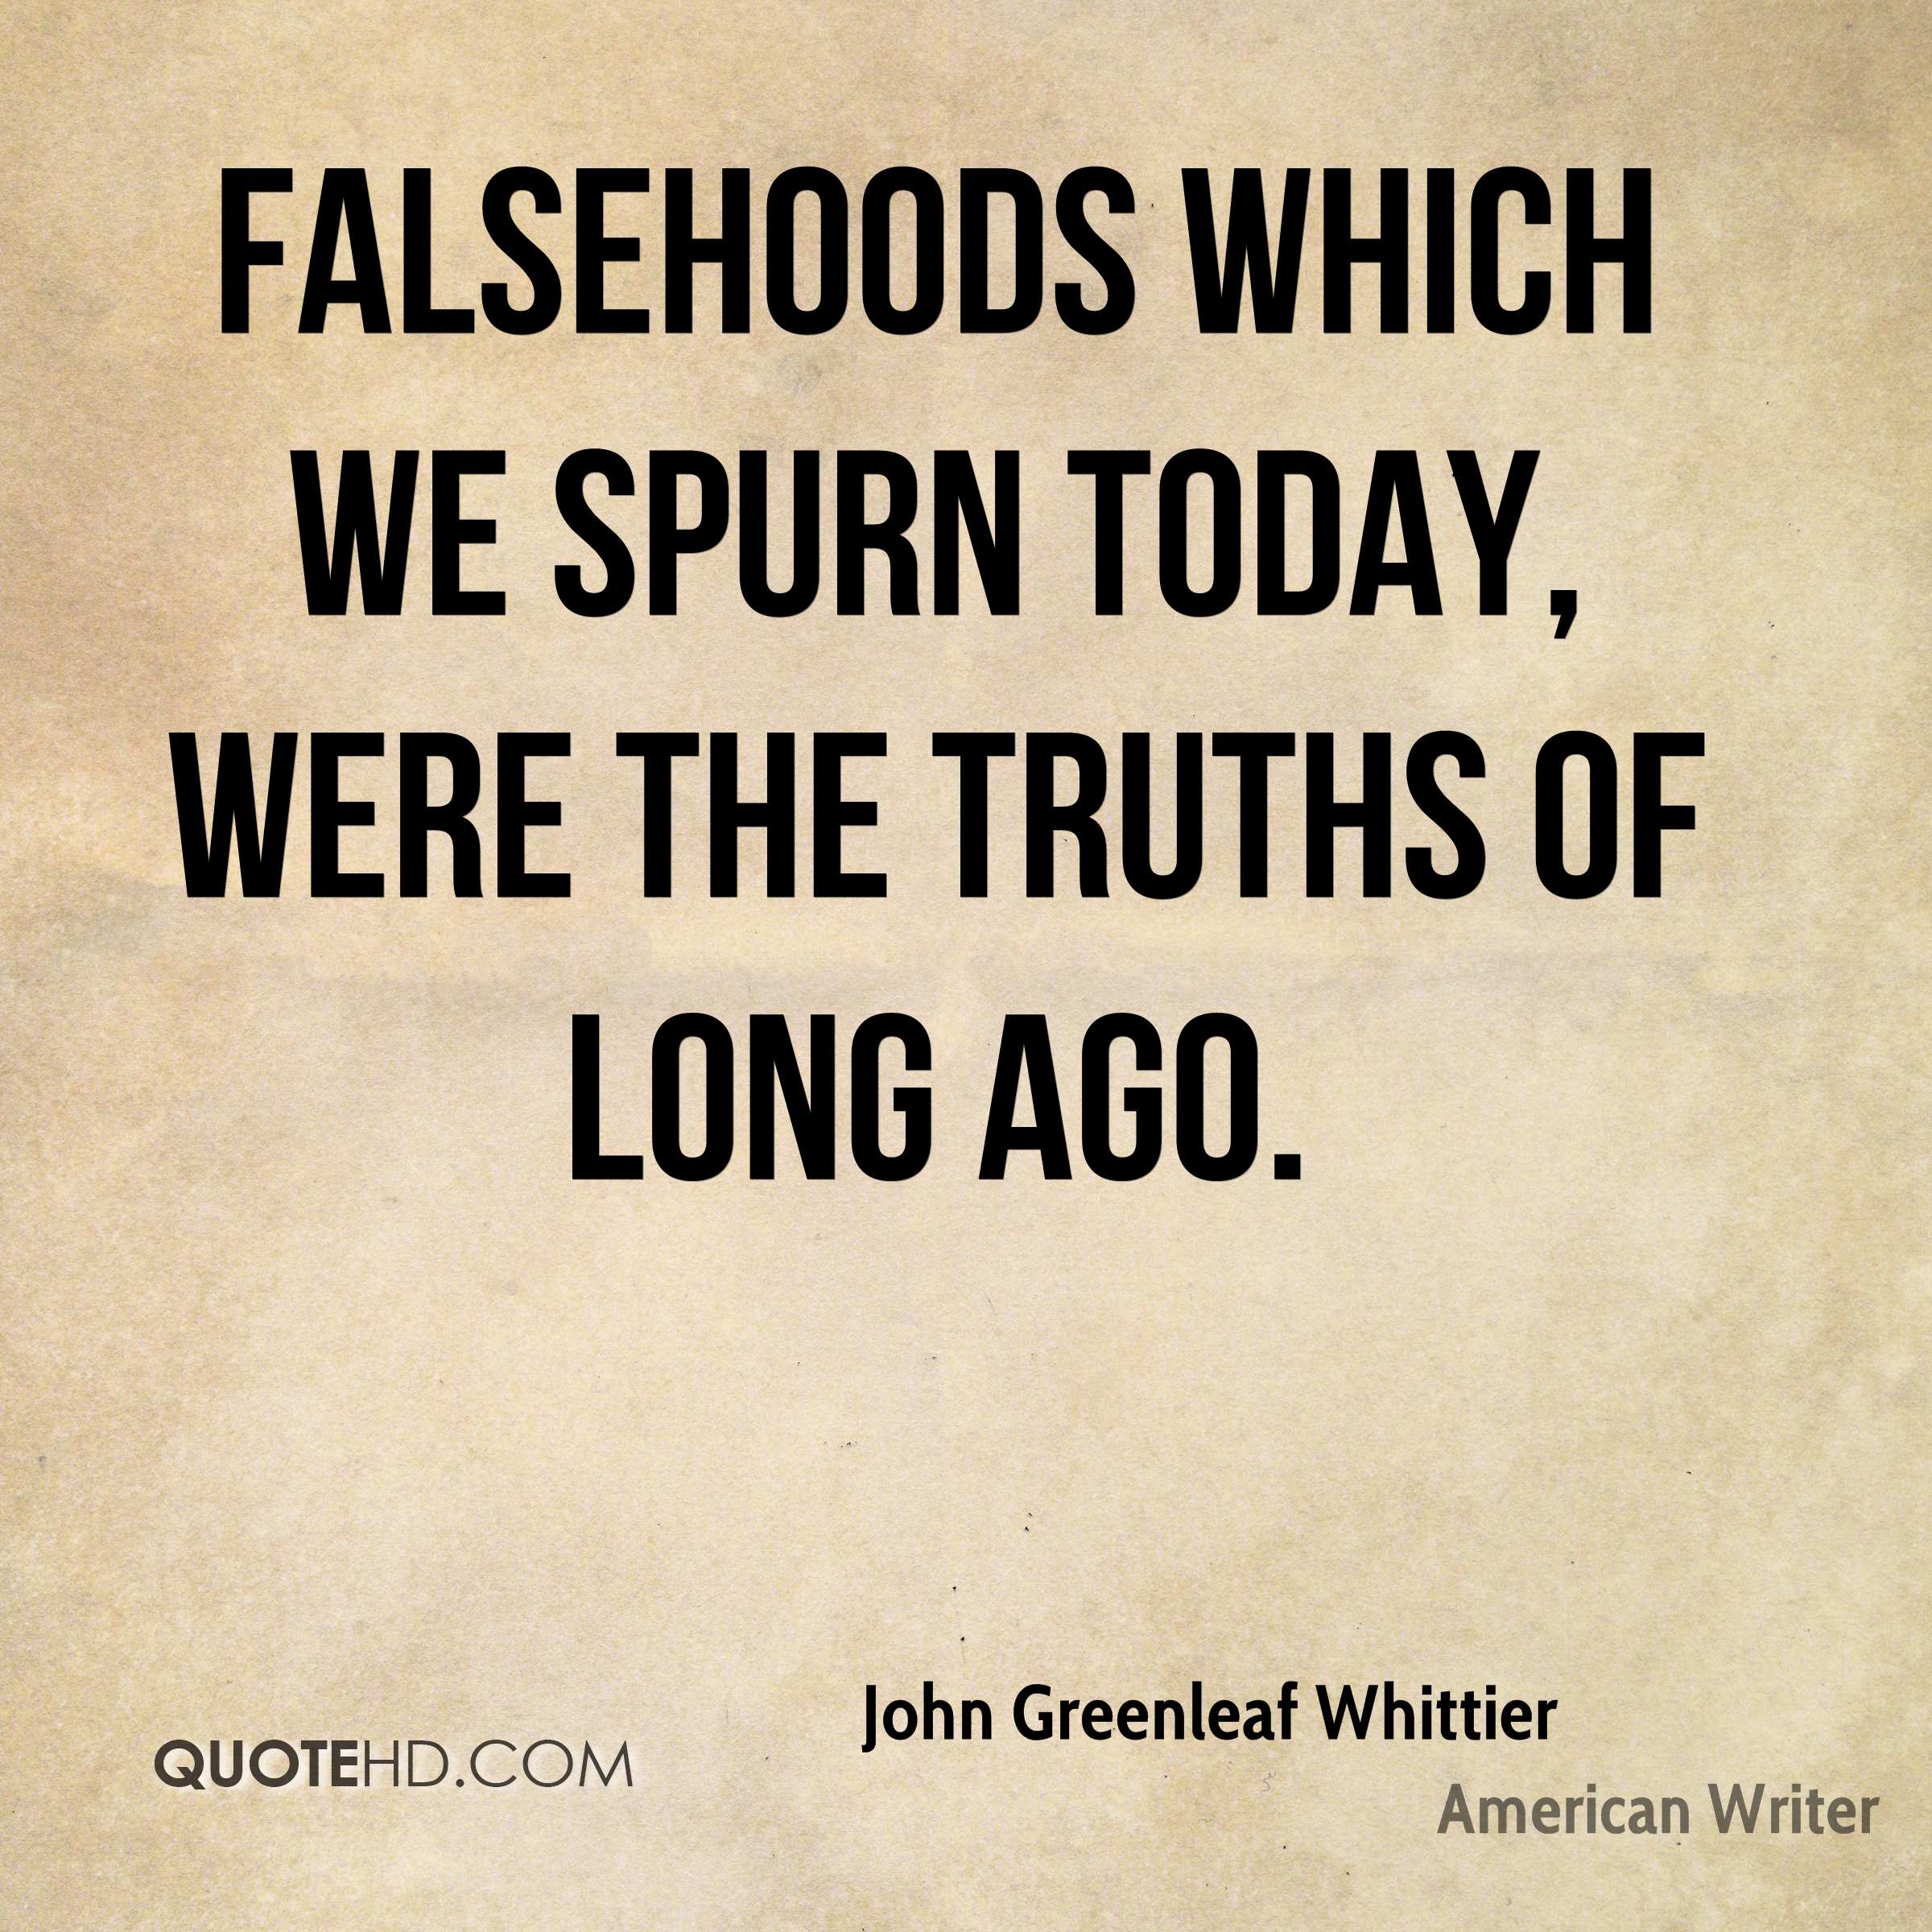 Falsehoods which we spurn today, were the truths of long ago.